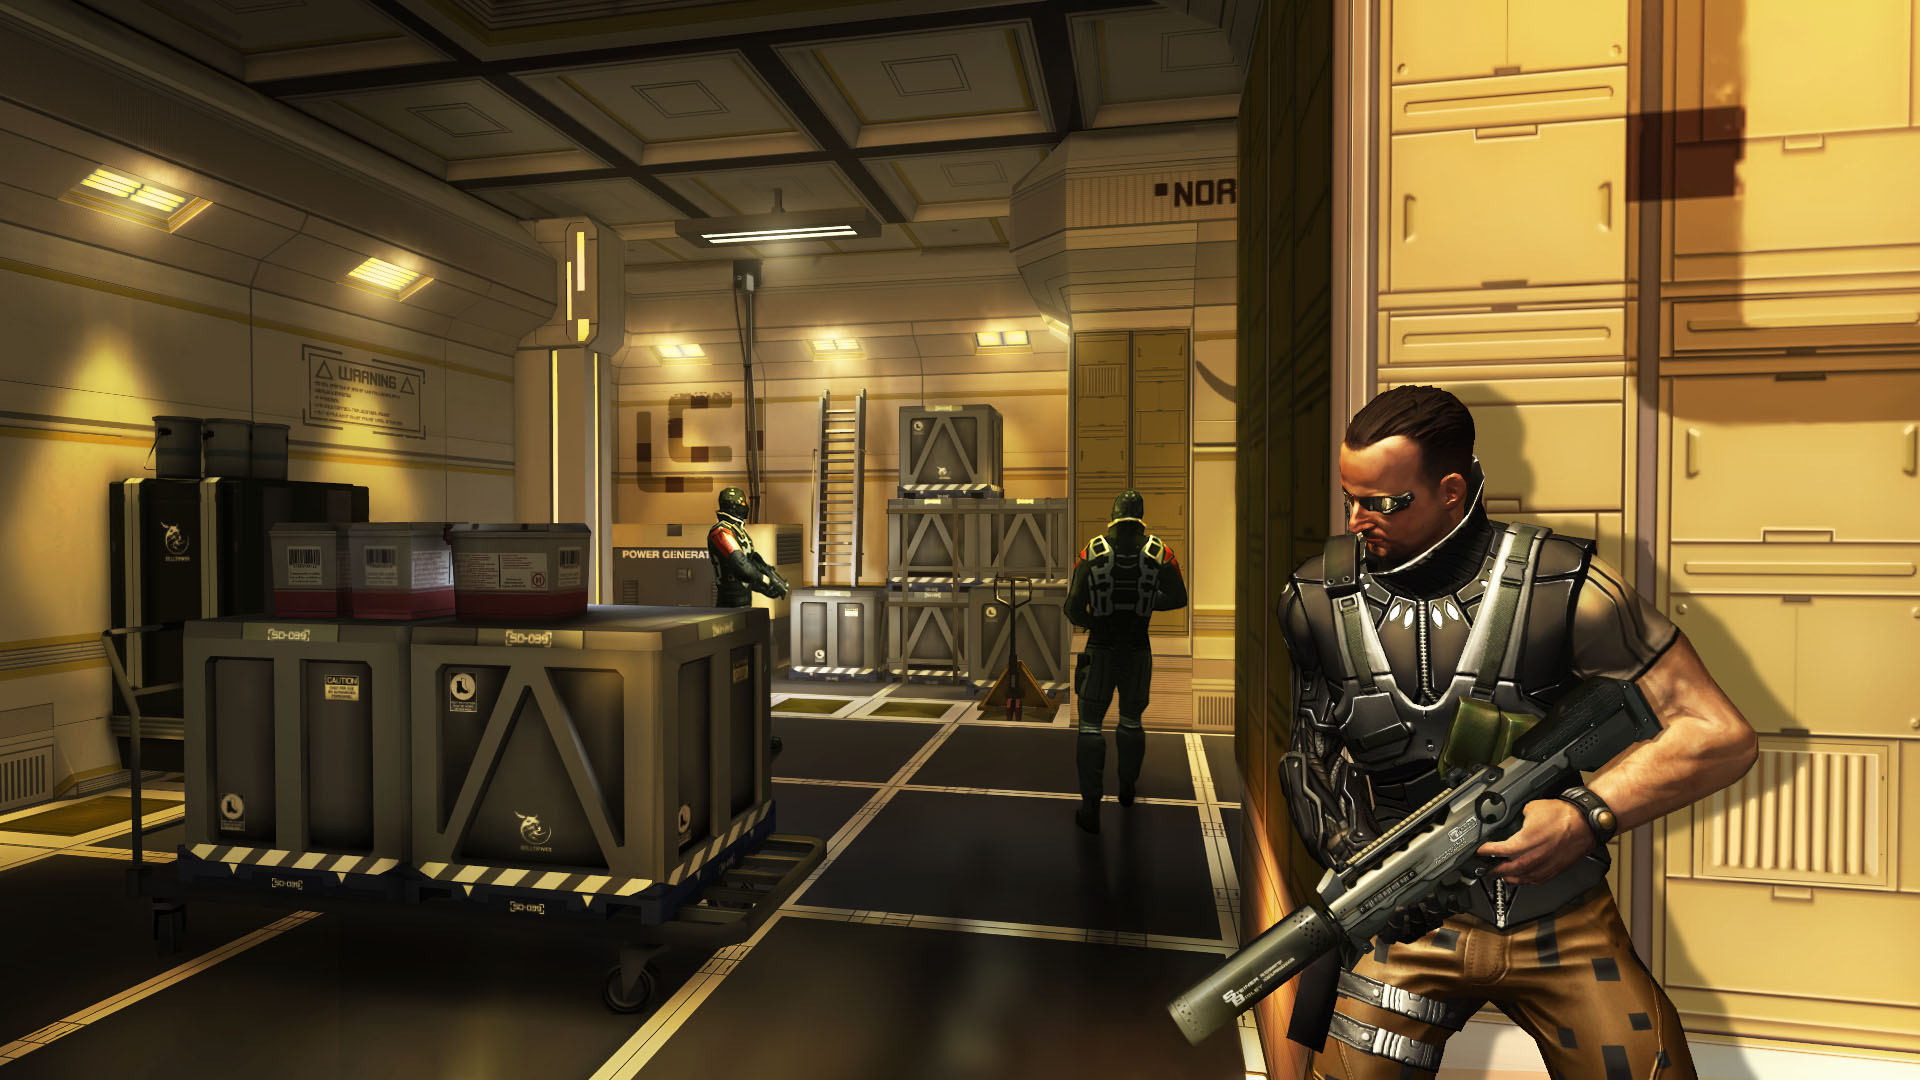 Deus Ex: The Fall - iOS (iPhone, iPad, iPod touch)